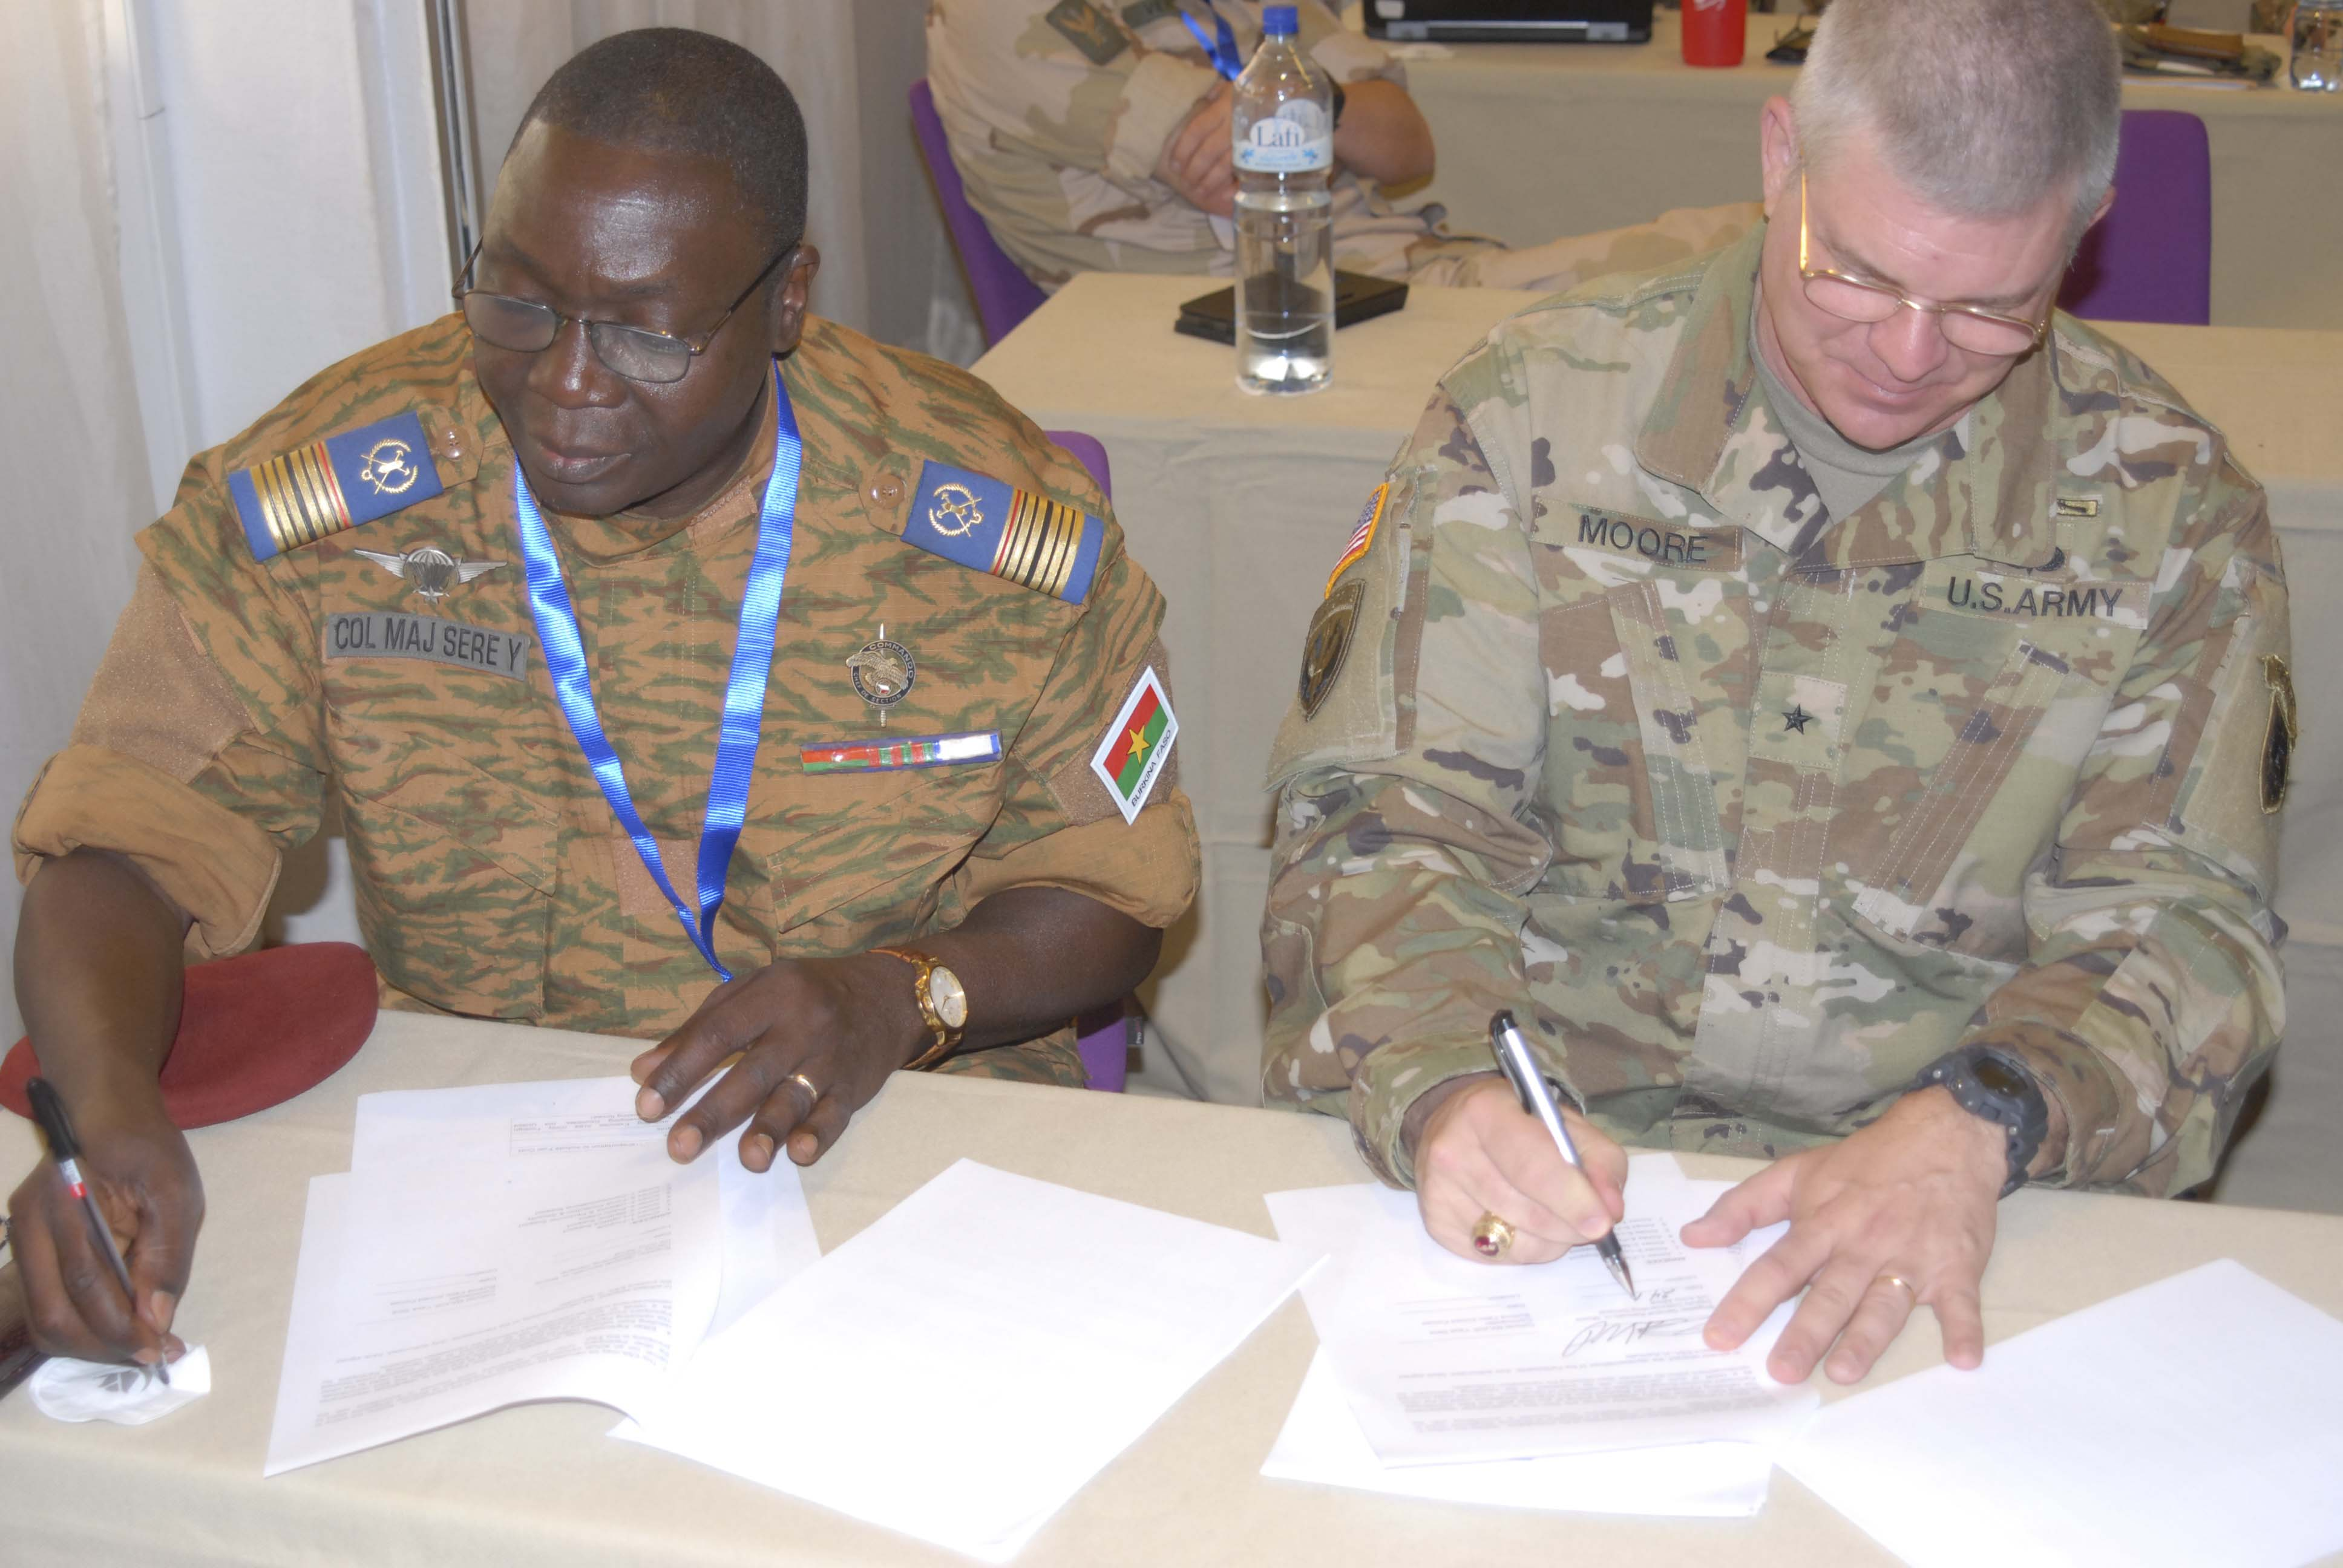 Brig. Gen. Kenneth H. Moore, Jr., U.S. Army Africa deputy commanding general and Col. Maj. Yaya Sere, chief planning officer and chief of operations for the General Staff of the Burkina Faso Armed Forces sign the Western Accord 2016 Exercise Support Arrangement between USARAF and The Ministry of Defence of Burkina Faso. WA 2016 is a two-week long exercise with regional African partners and their Western allies designed to strengthen partnerships and enhance capacity and capabilities to conduct joint multinational peacekeeping operations in West Africa. (U.S. Army Africa photo by Sgt. 1st Class Chris Bridson)